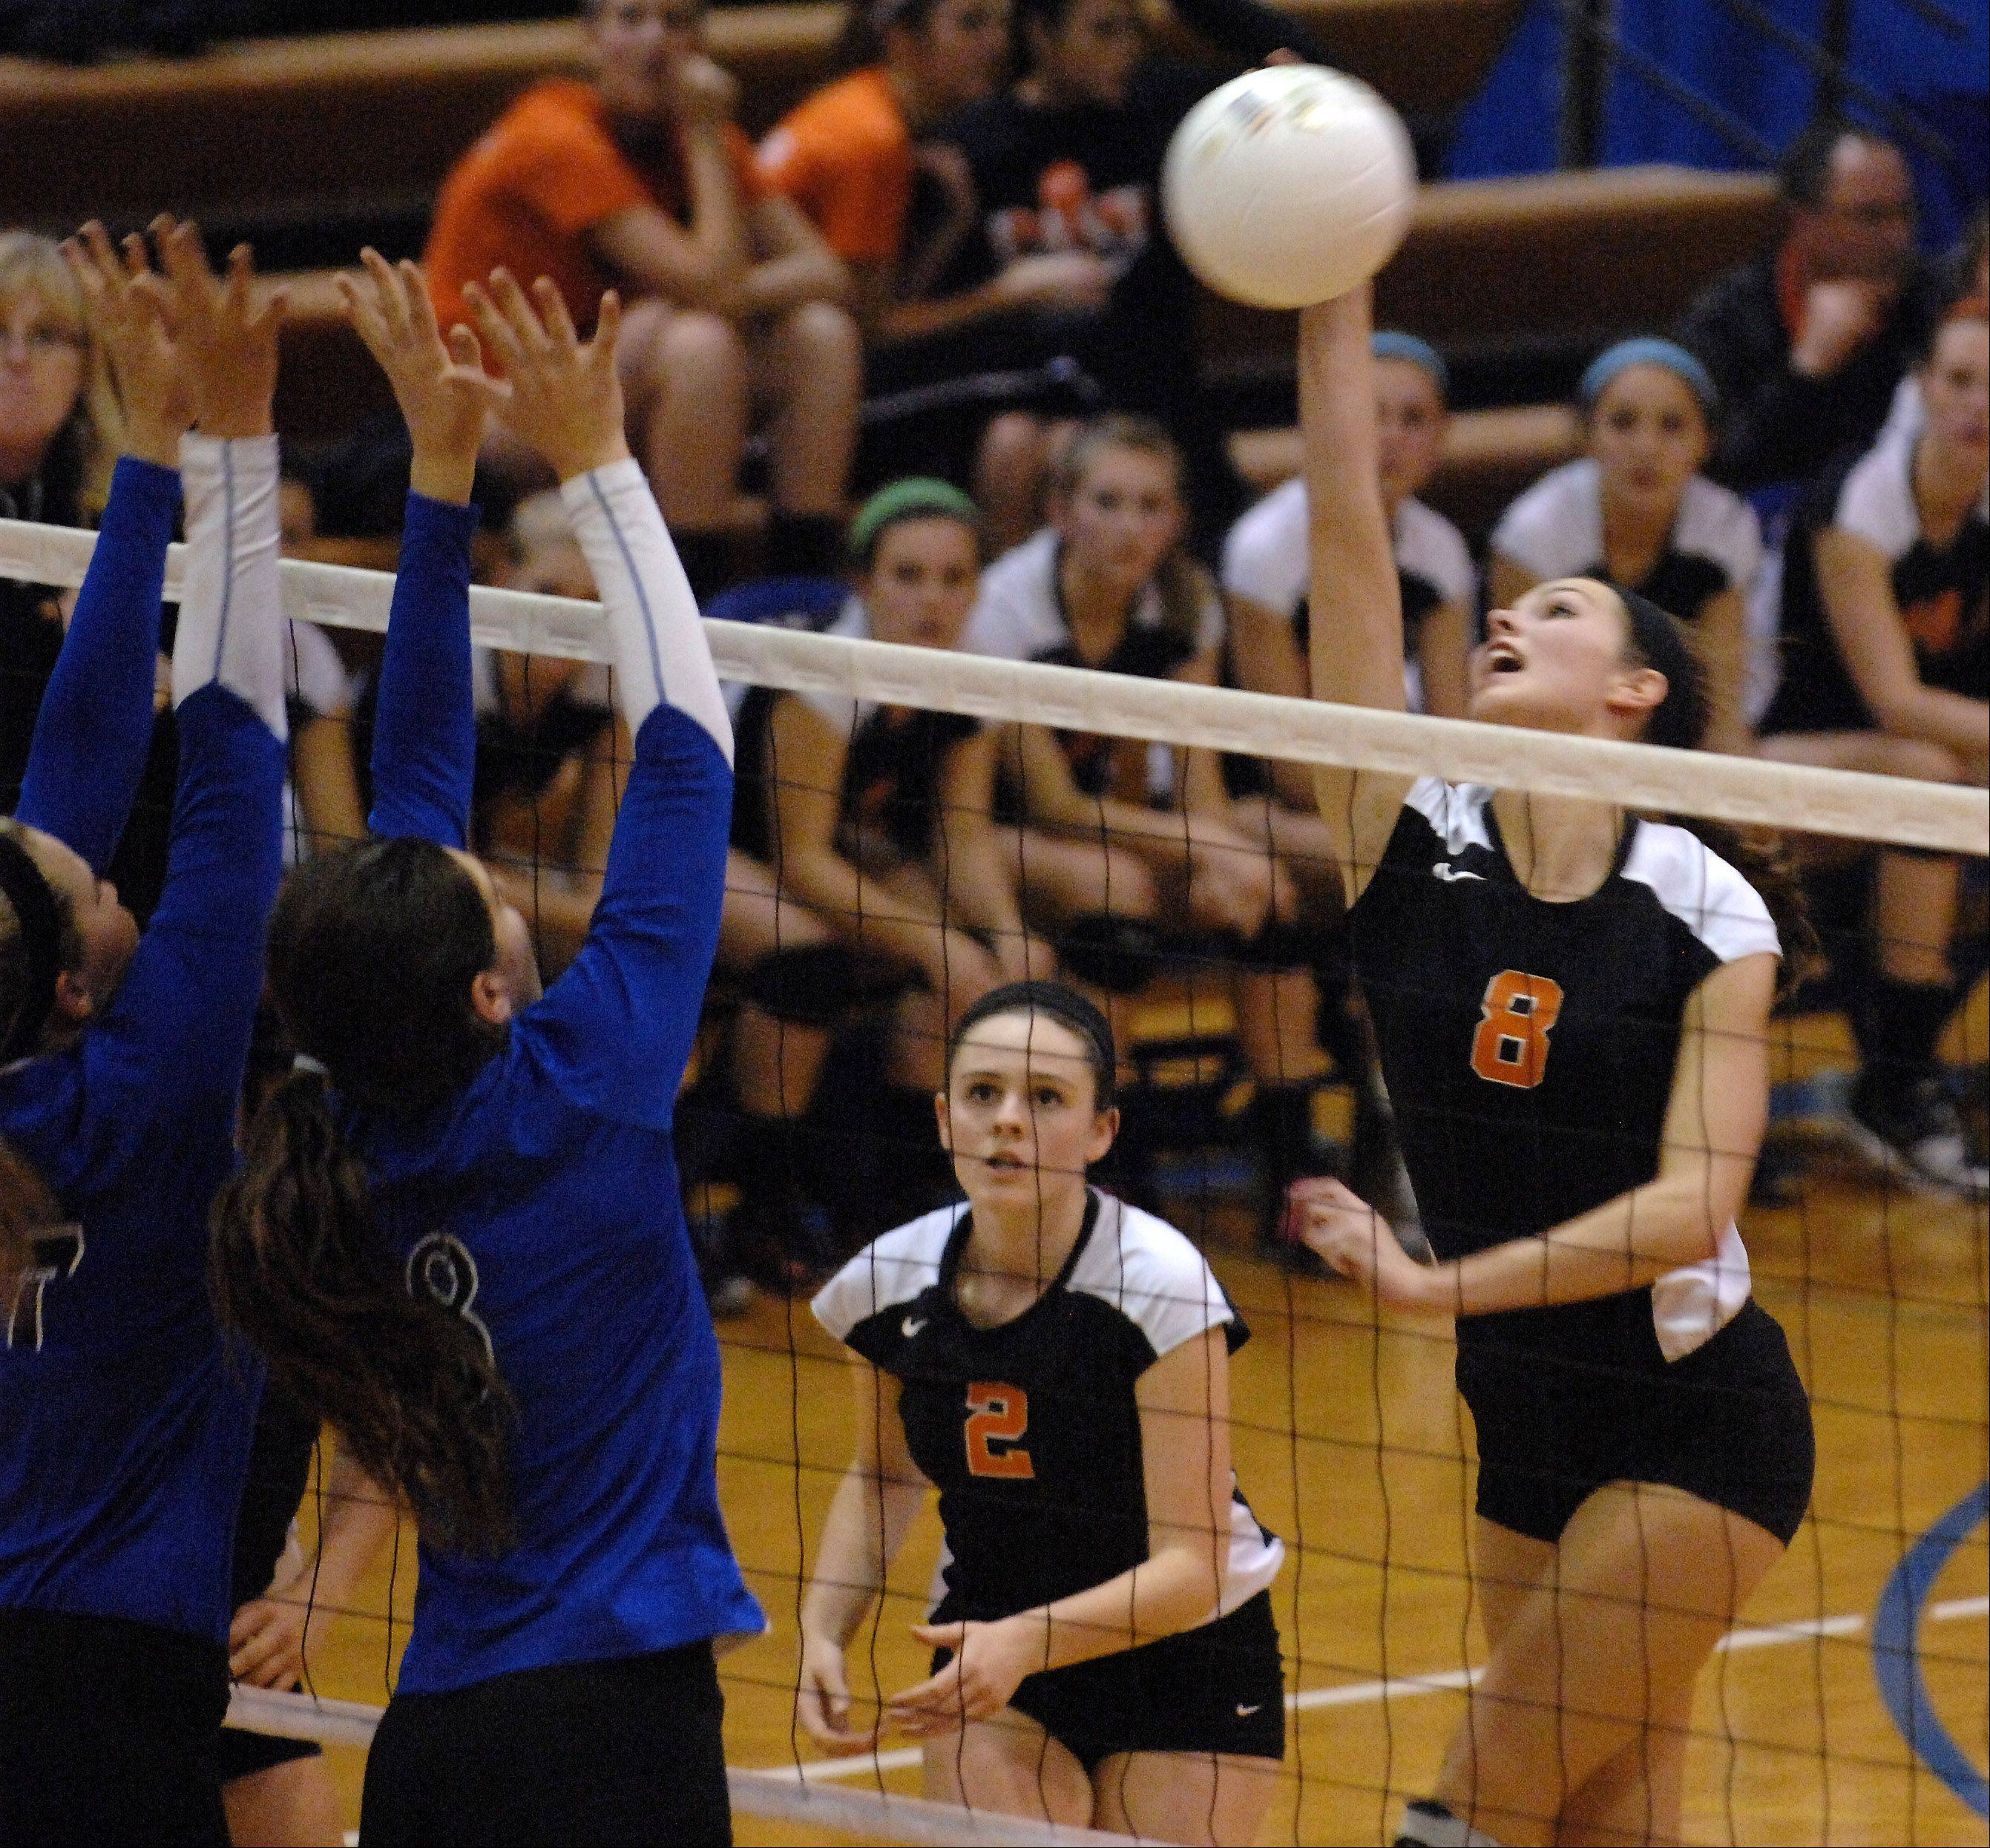 St. Charles East's Emma Johnson tries to hit past a pair of Geneva blockers during Tuesday's sectional semifinals at Larkin High School in Elgin.